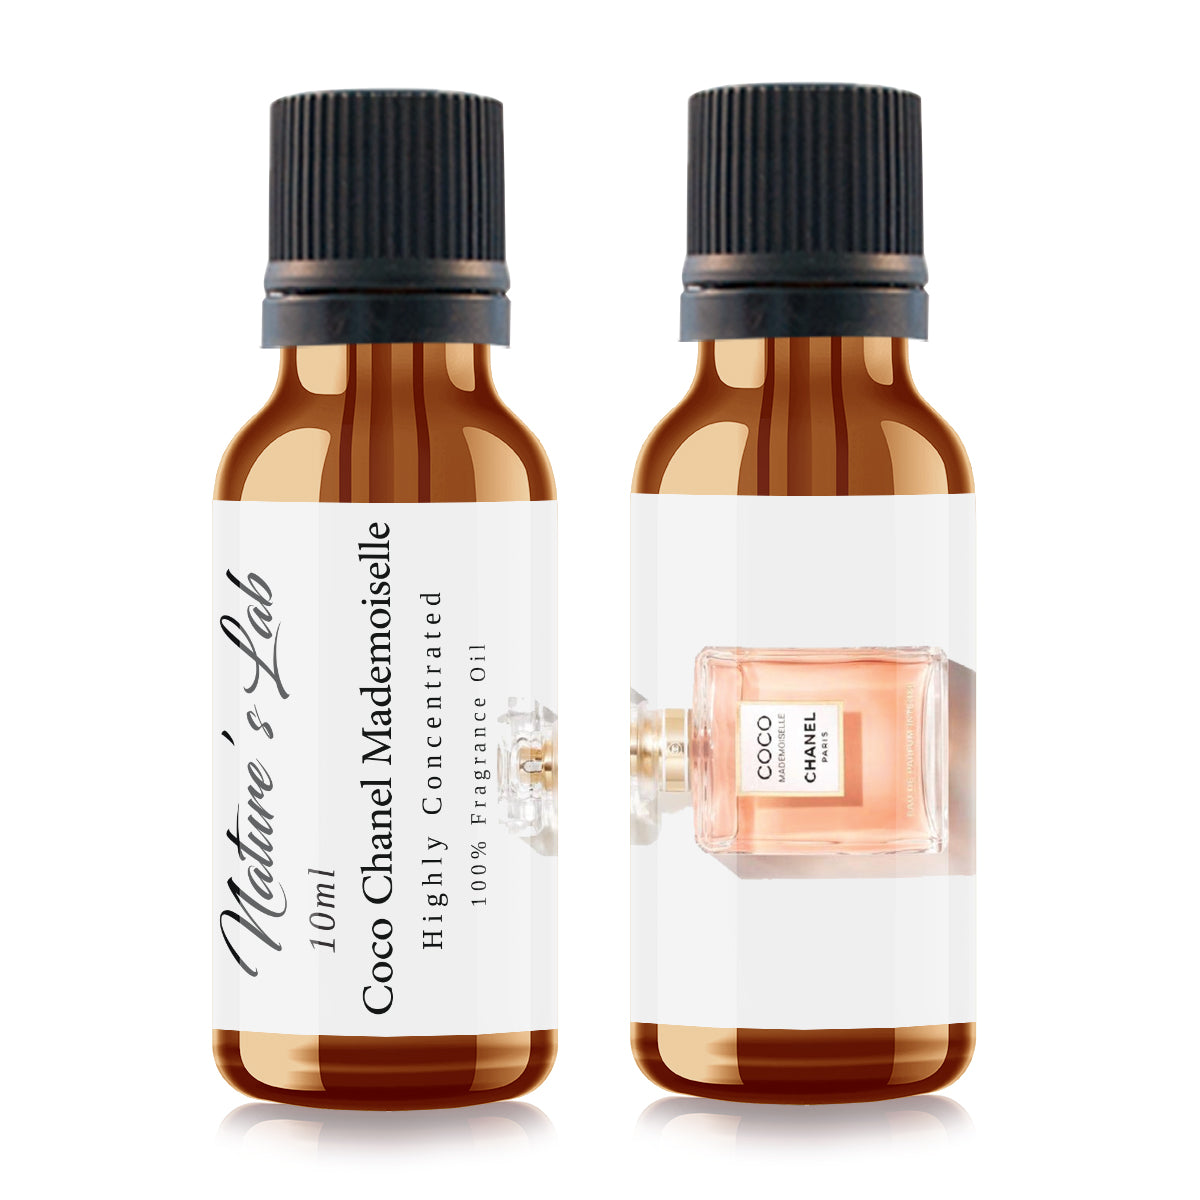 Coco Chanel Mademoiselle Type Fragrance Oil